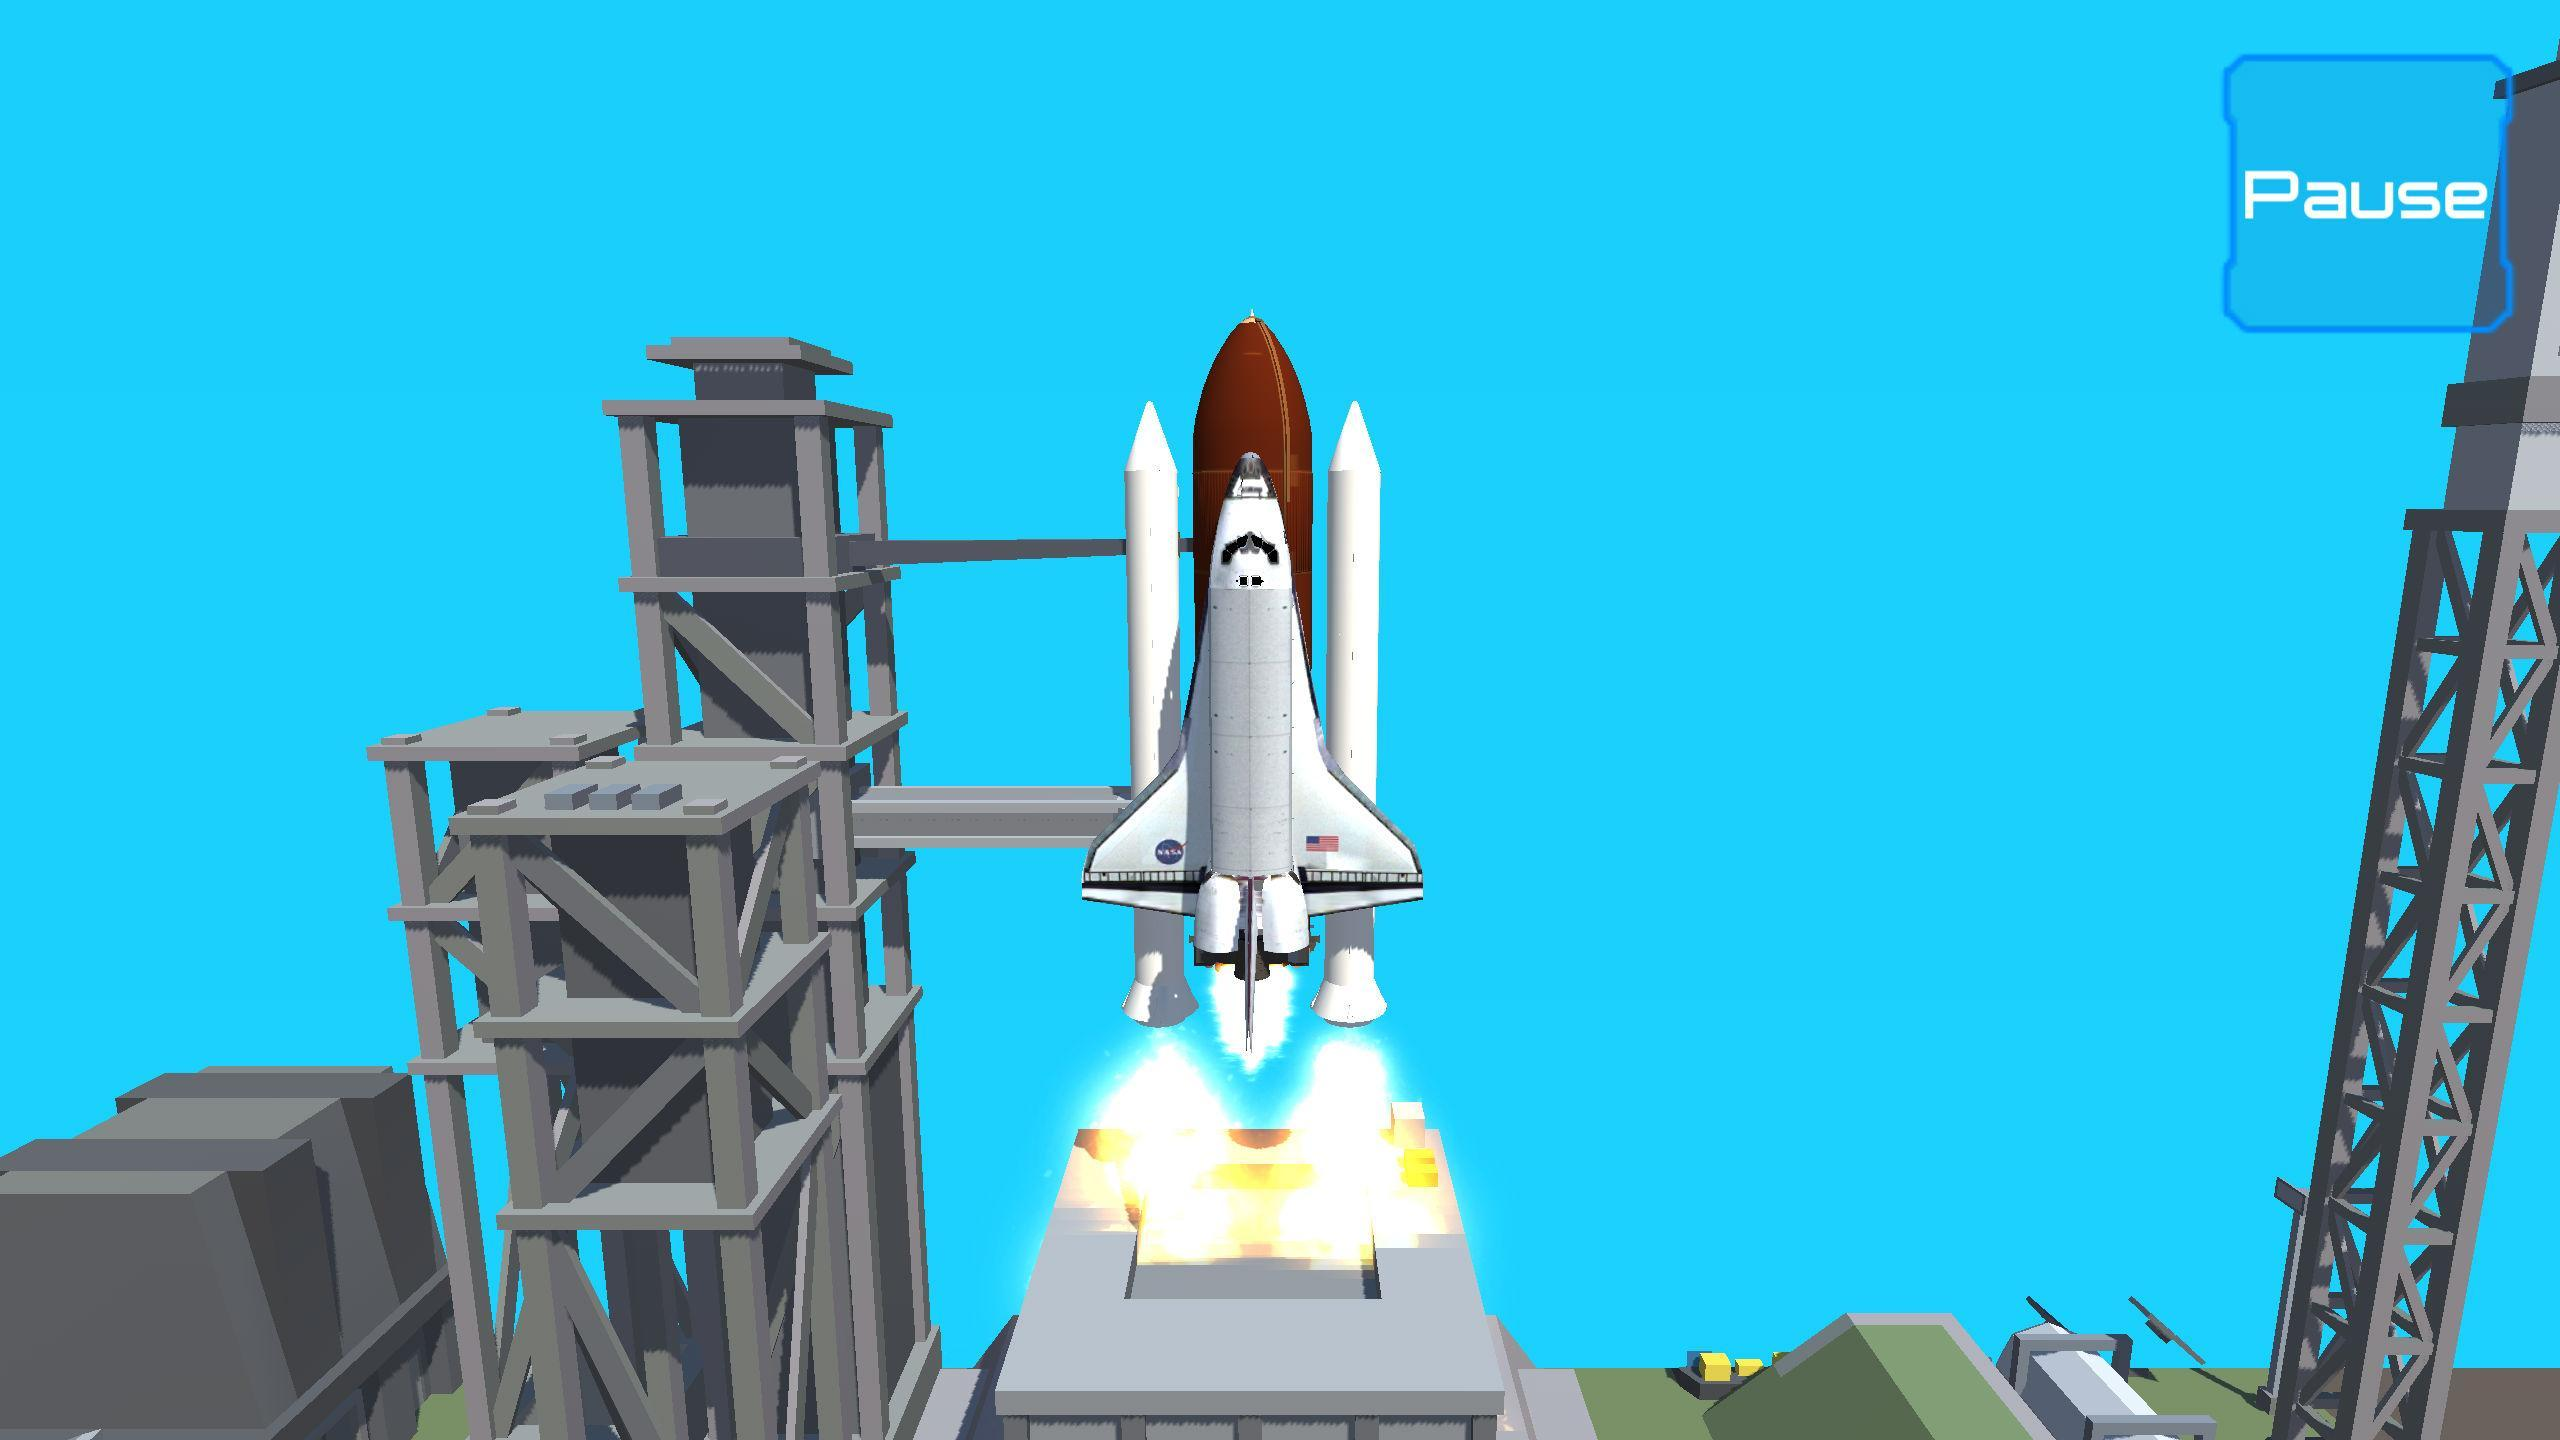 Space Shuttle Flight Agency - Spaceship Simulator for